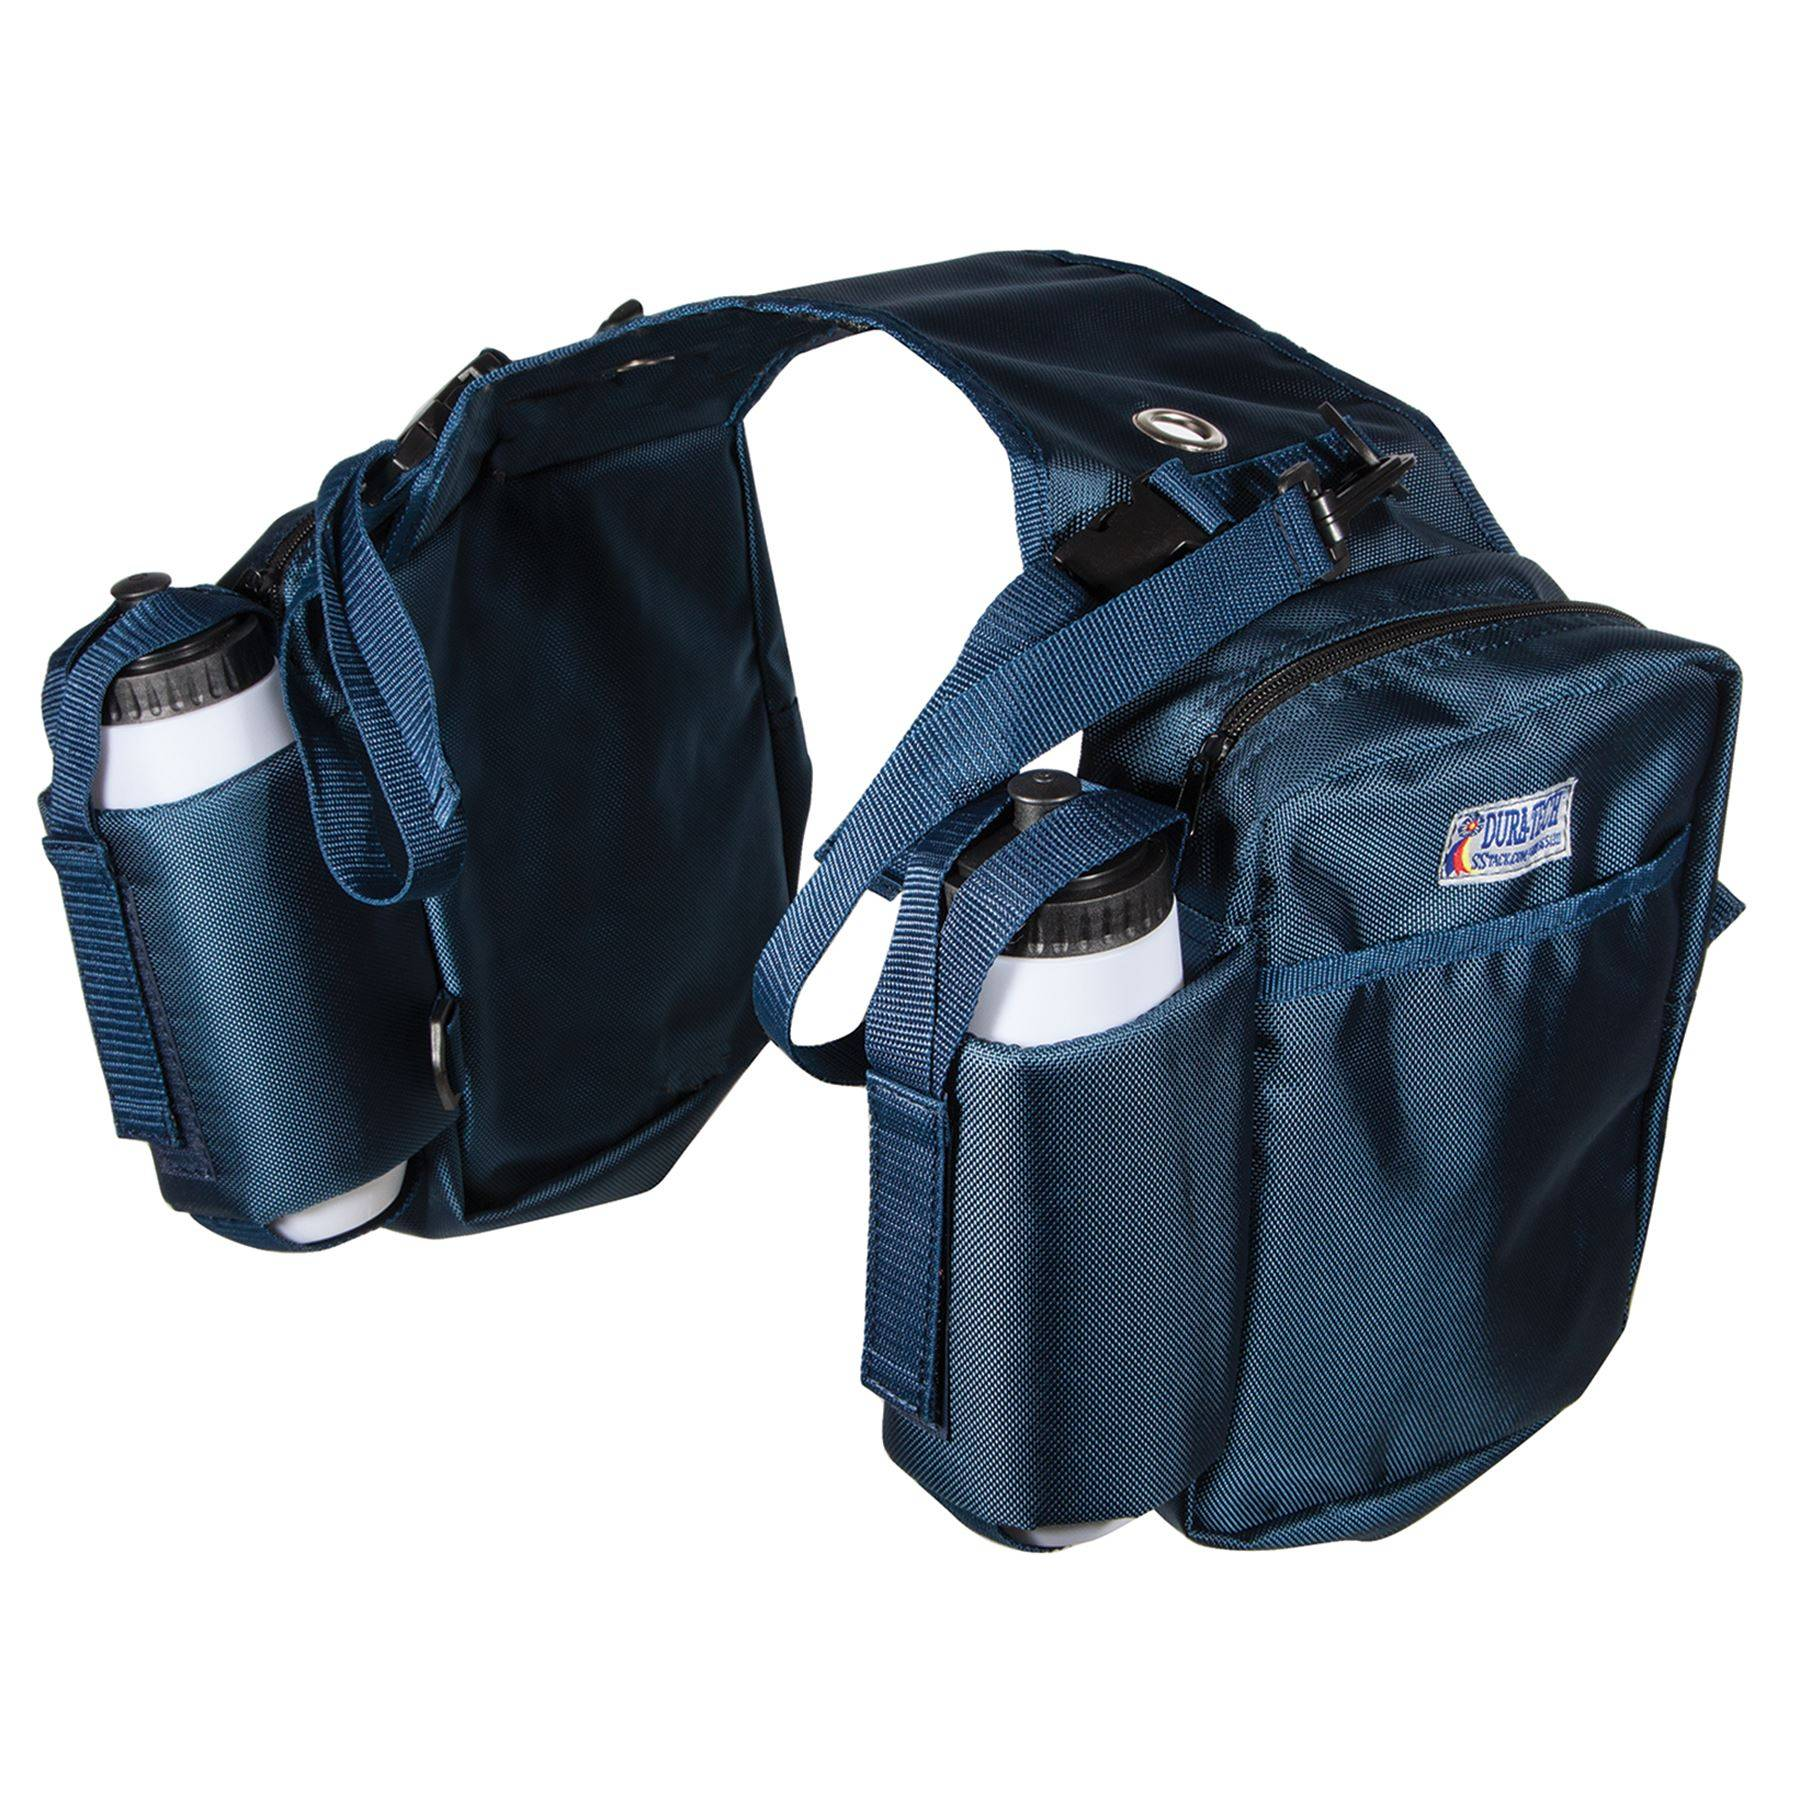 Dura-Tech® Trail Boss Double Sided Saddle Bag w/Pockets